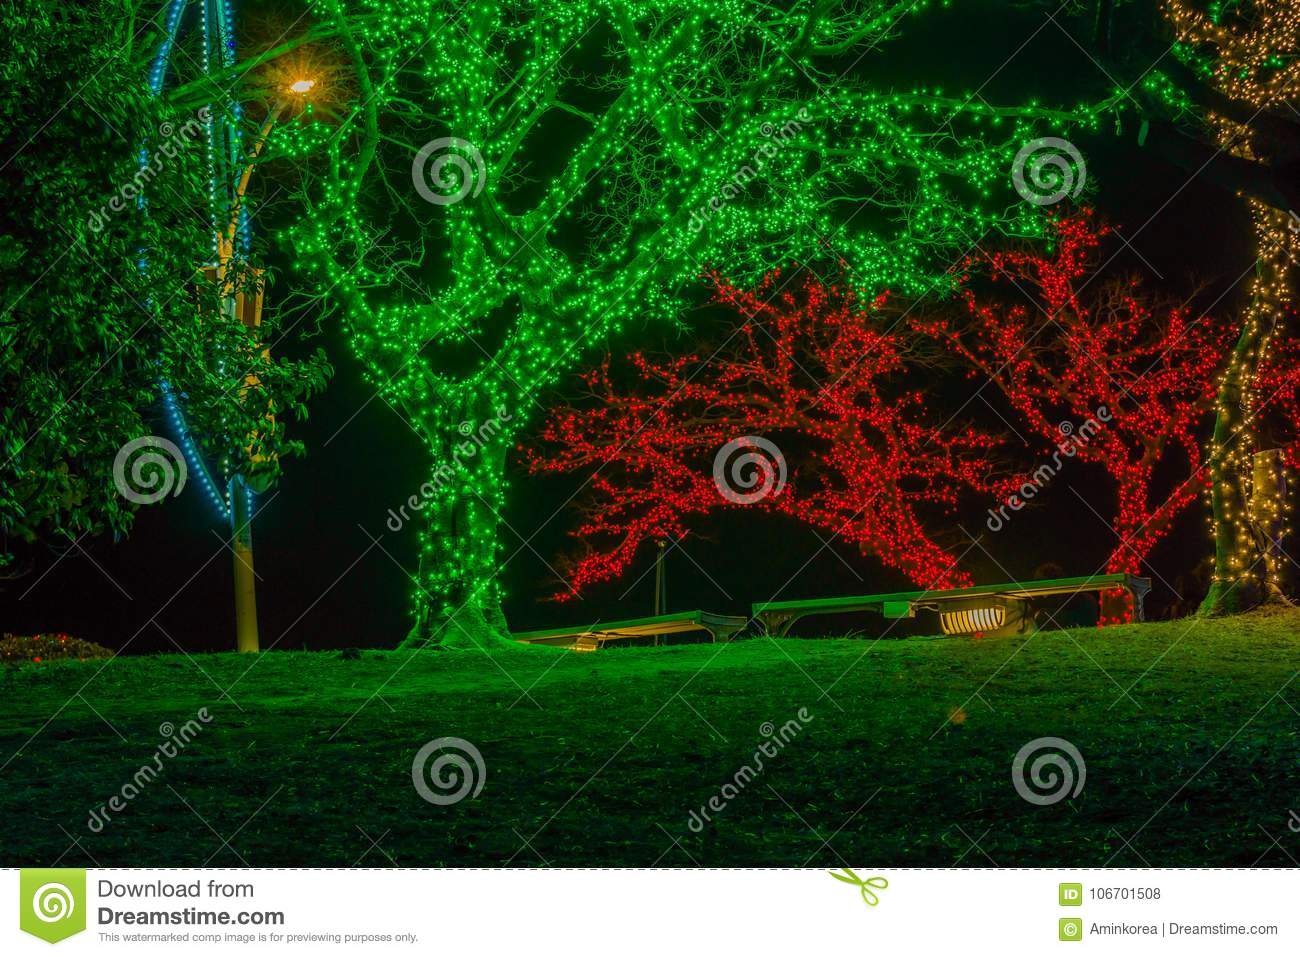 night photo of trees covered with tiny red white and green christmas lights with two park benches under the trees